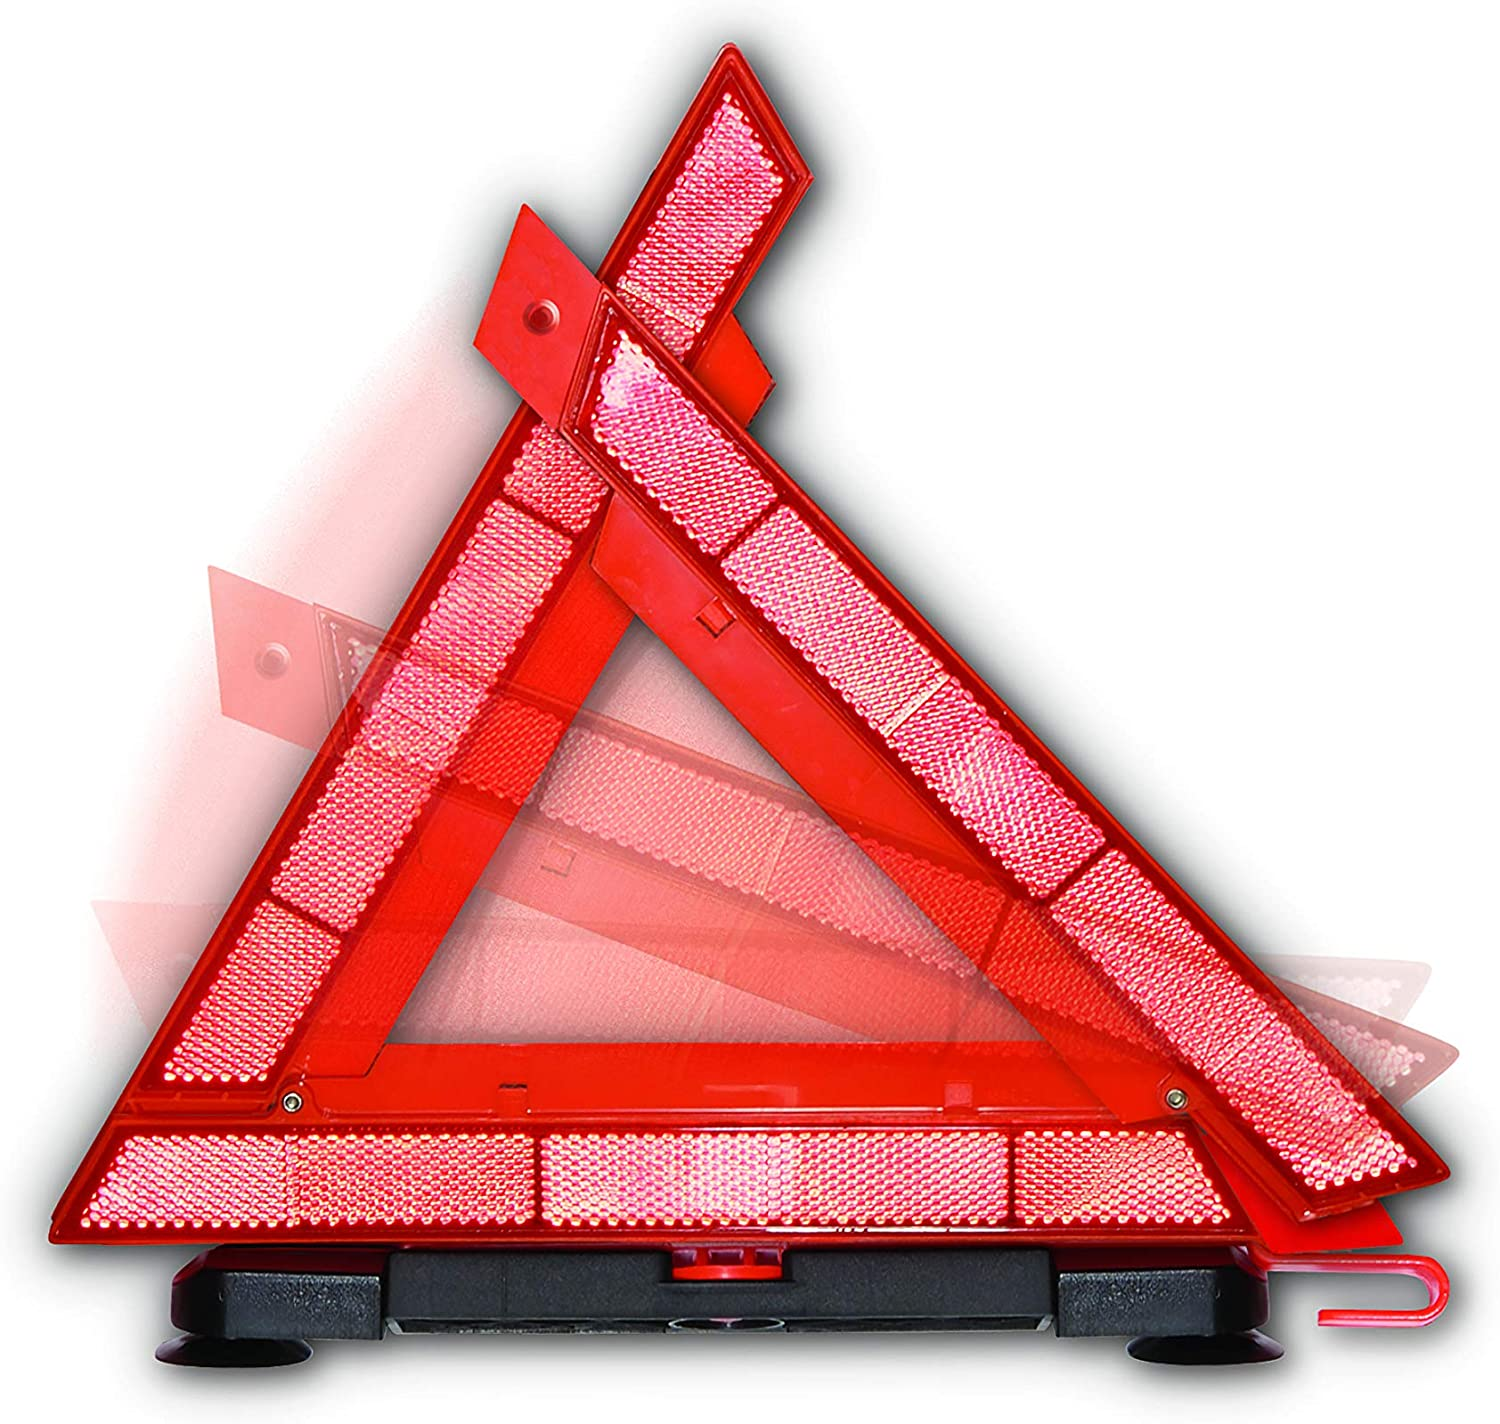 Justin Case Window Safety Reflective Triangle Reflective Triangle for Roadside Emergencies